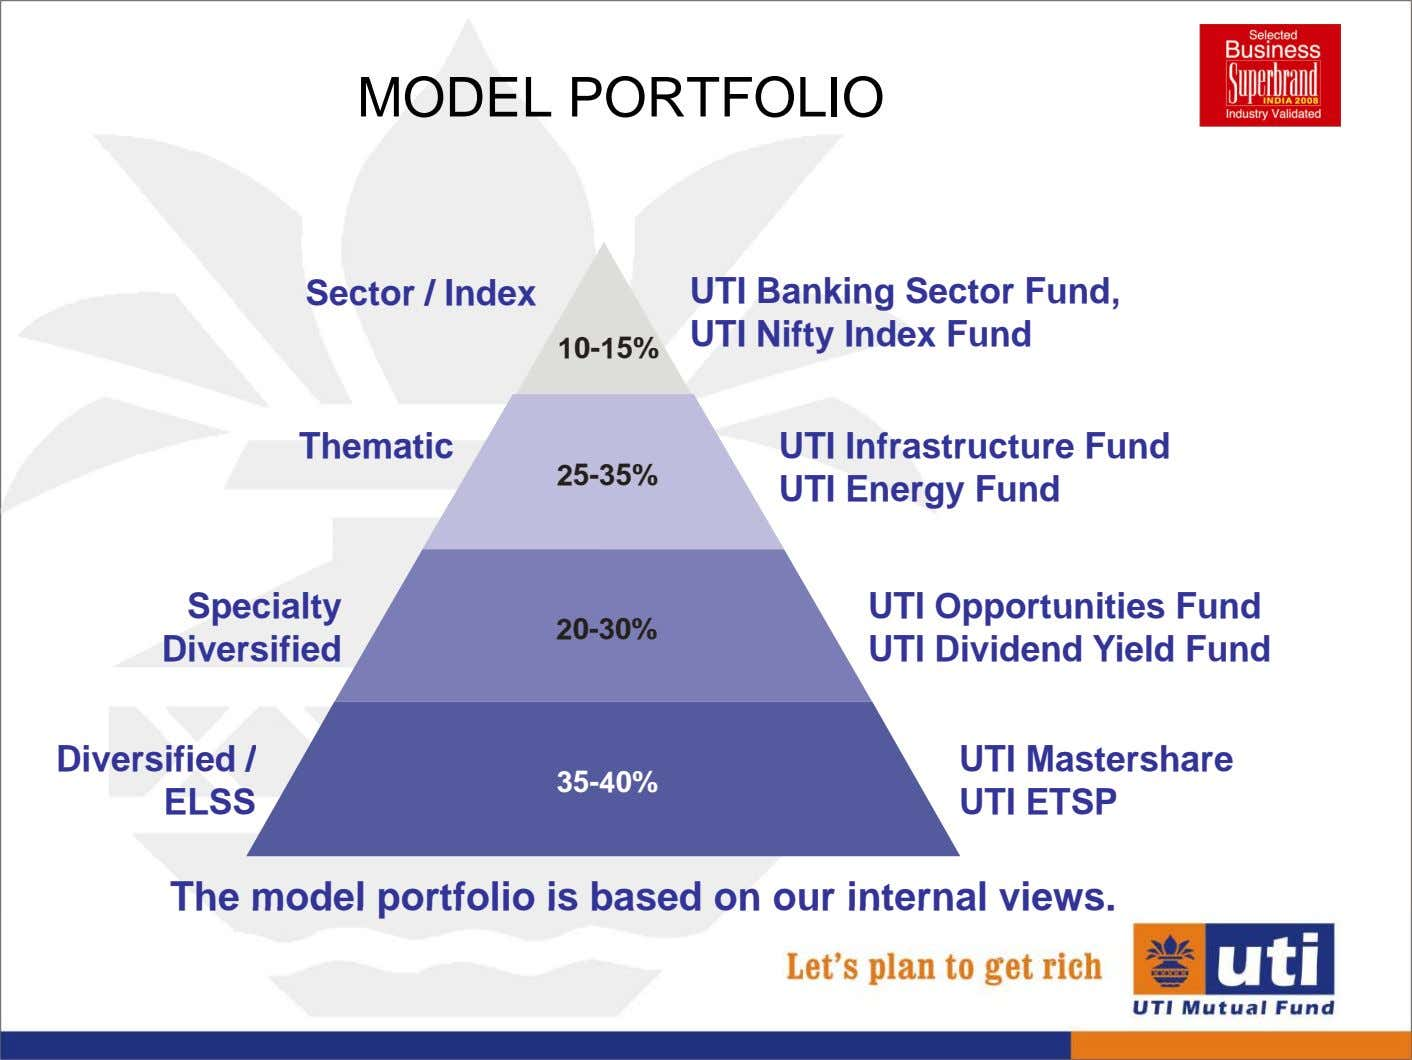 MODEL PORTFOLIO Sector / Index UTI Banking Sector Fund , UTI Nifty Index Fund 10-15%